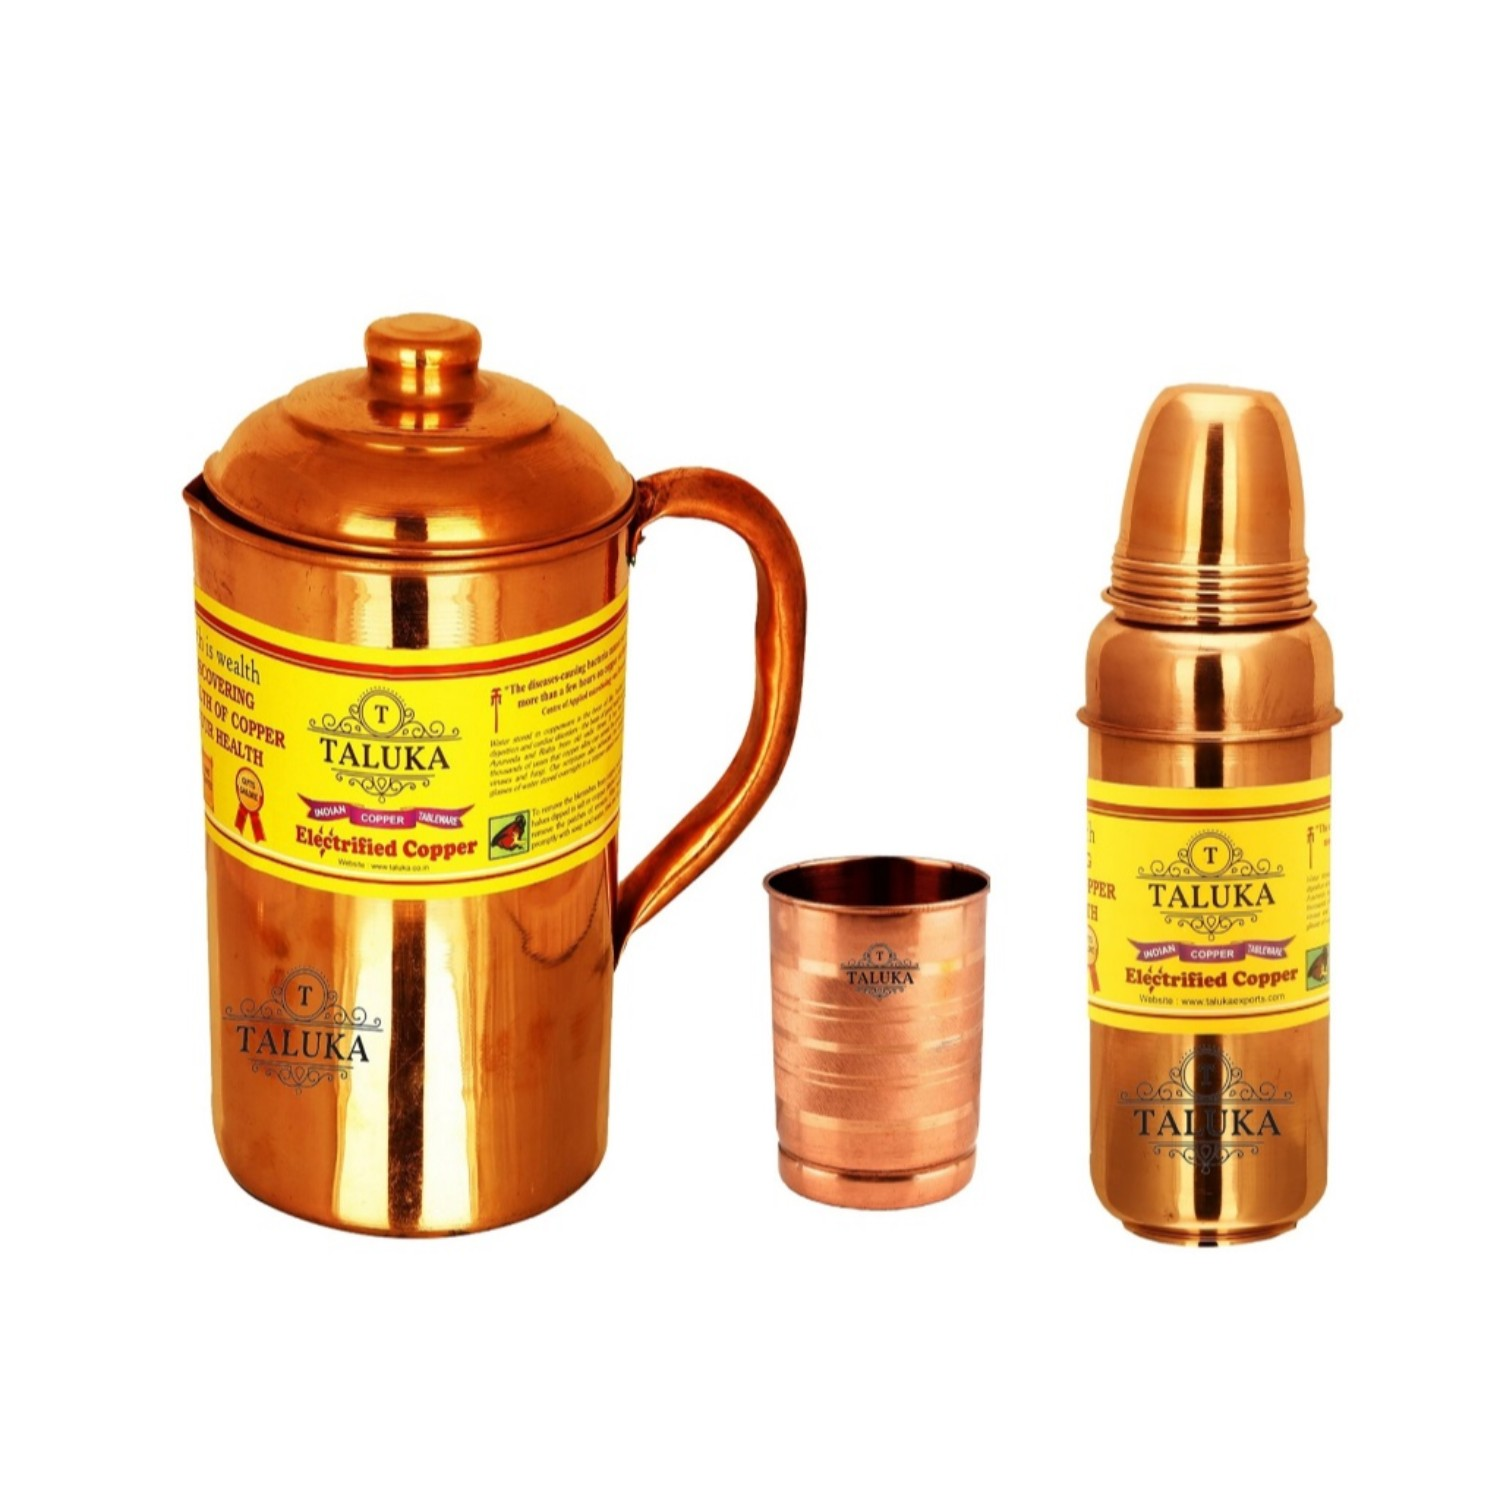 Copper Jug Pitcher 1500 ml with 1 PC Copper Glass Cup 1 PC Water Bottle Storage Drinking | Home Hotel Restaurant Tableware